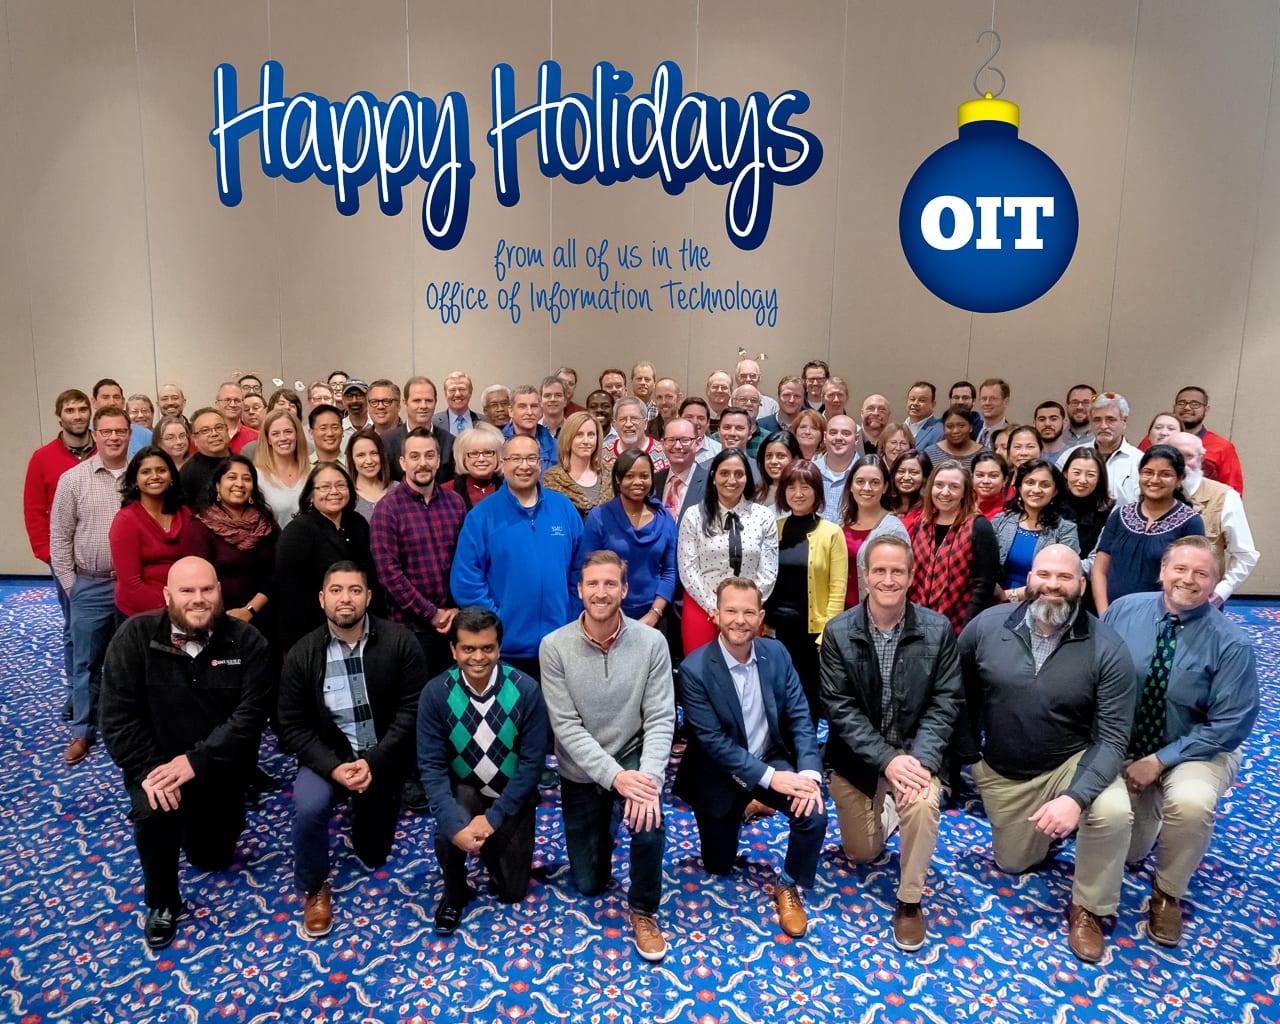 Happy Holidays from all of us in the Office of Information Technology.